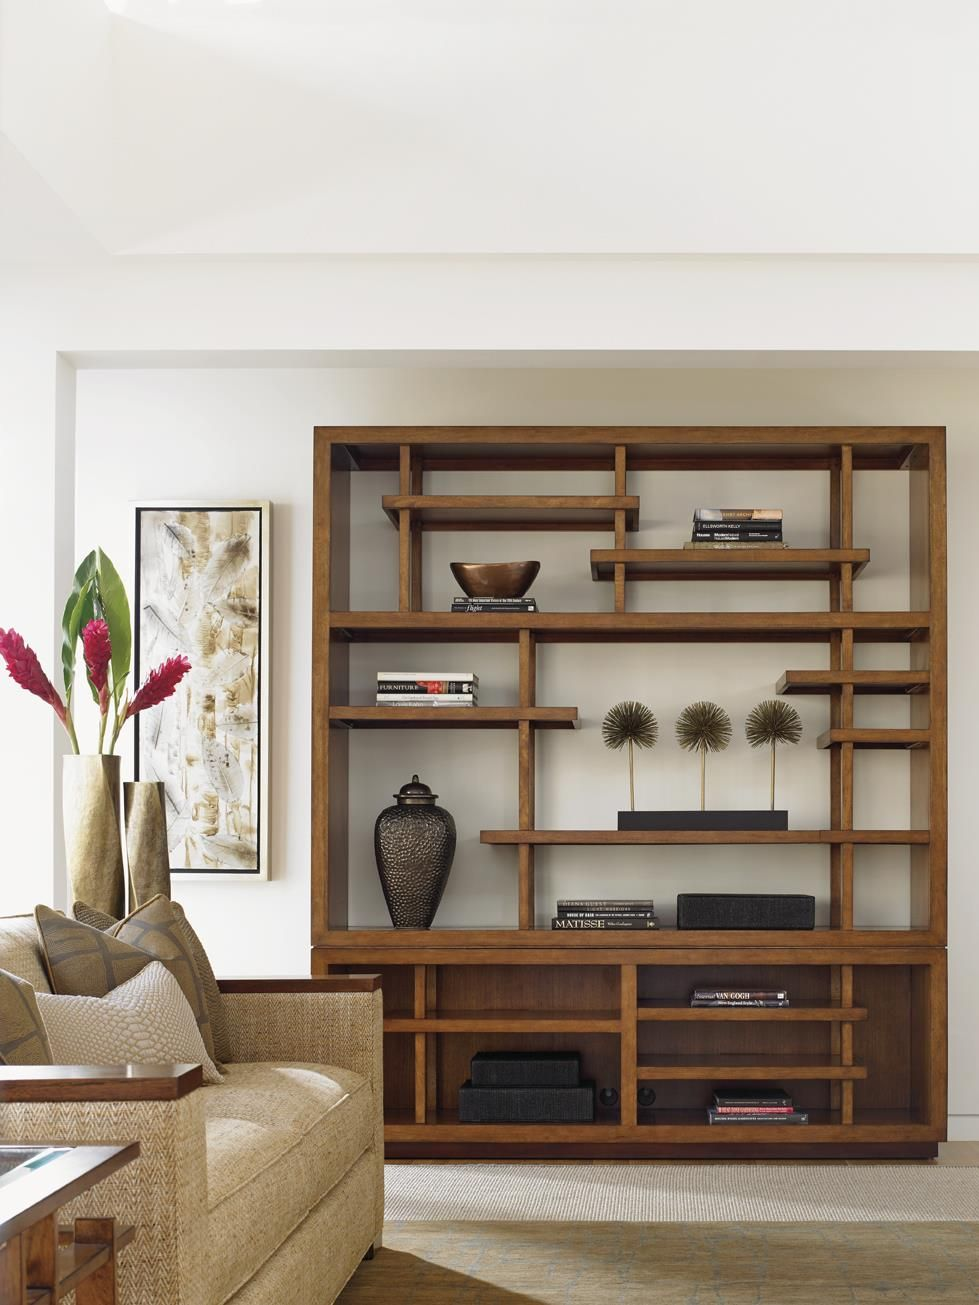 living room display shelves create a room of balance and zen tranquility with this pan 15890